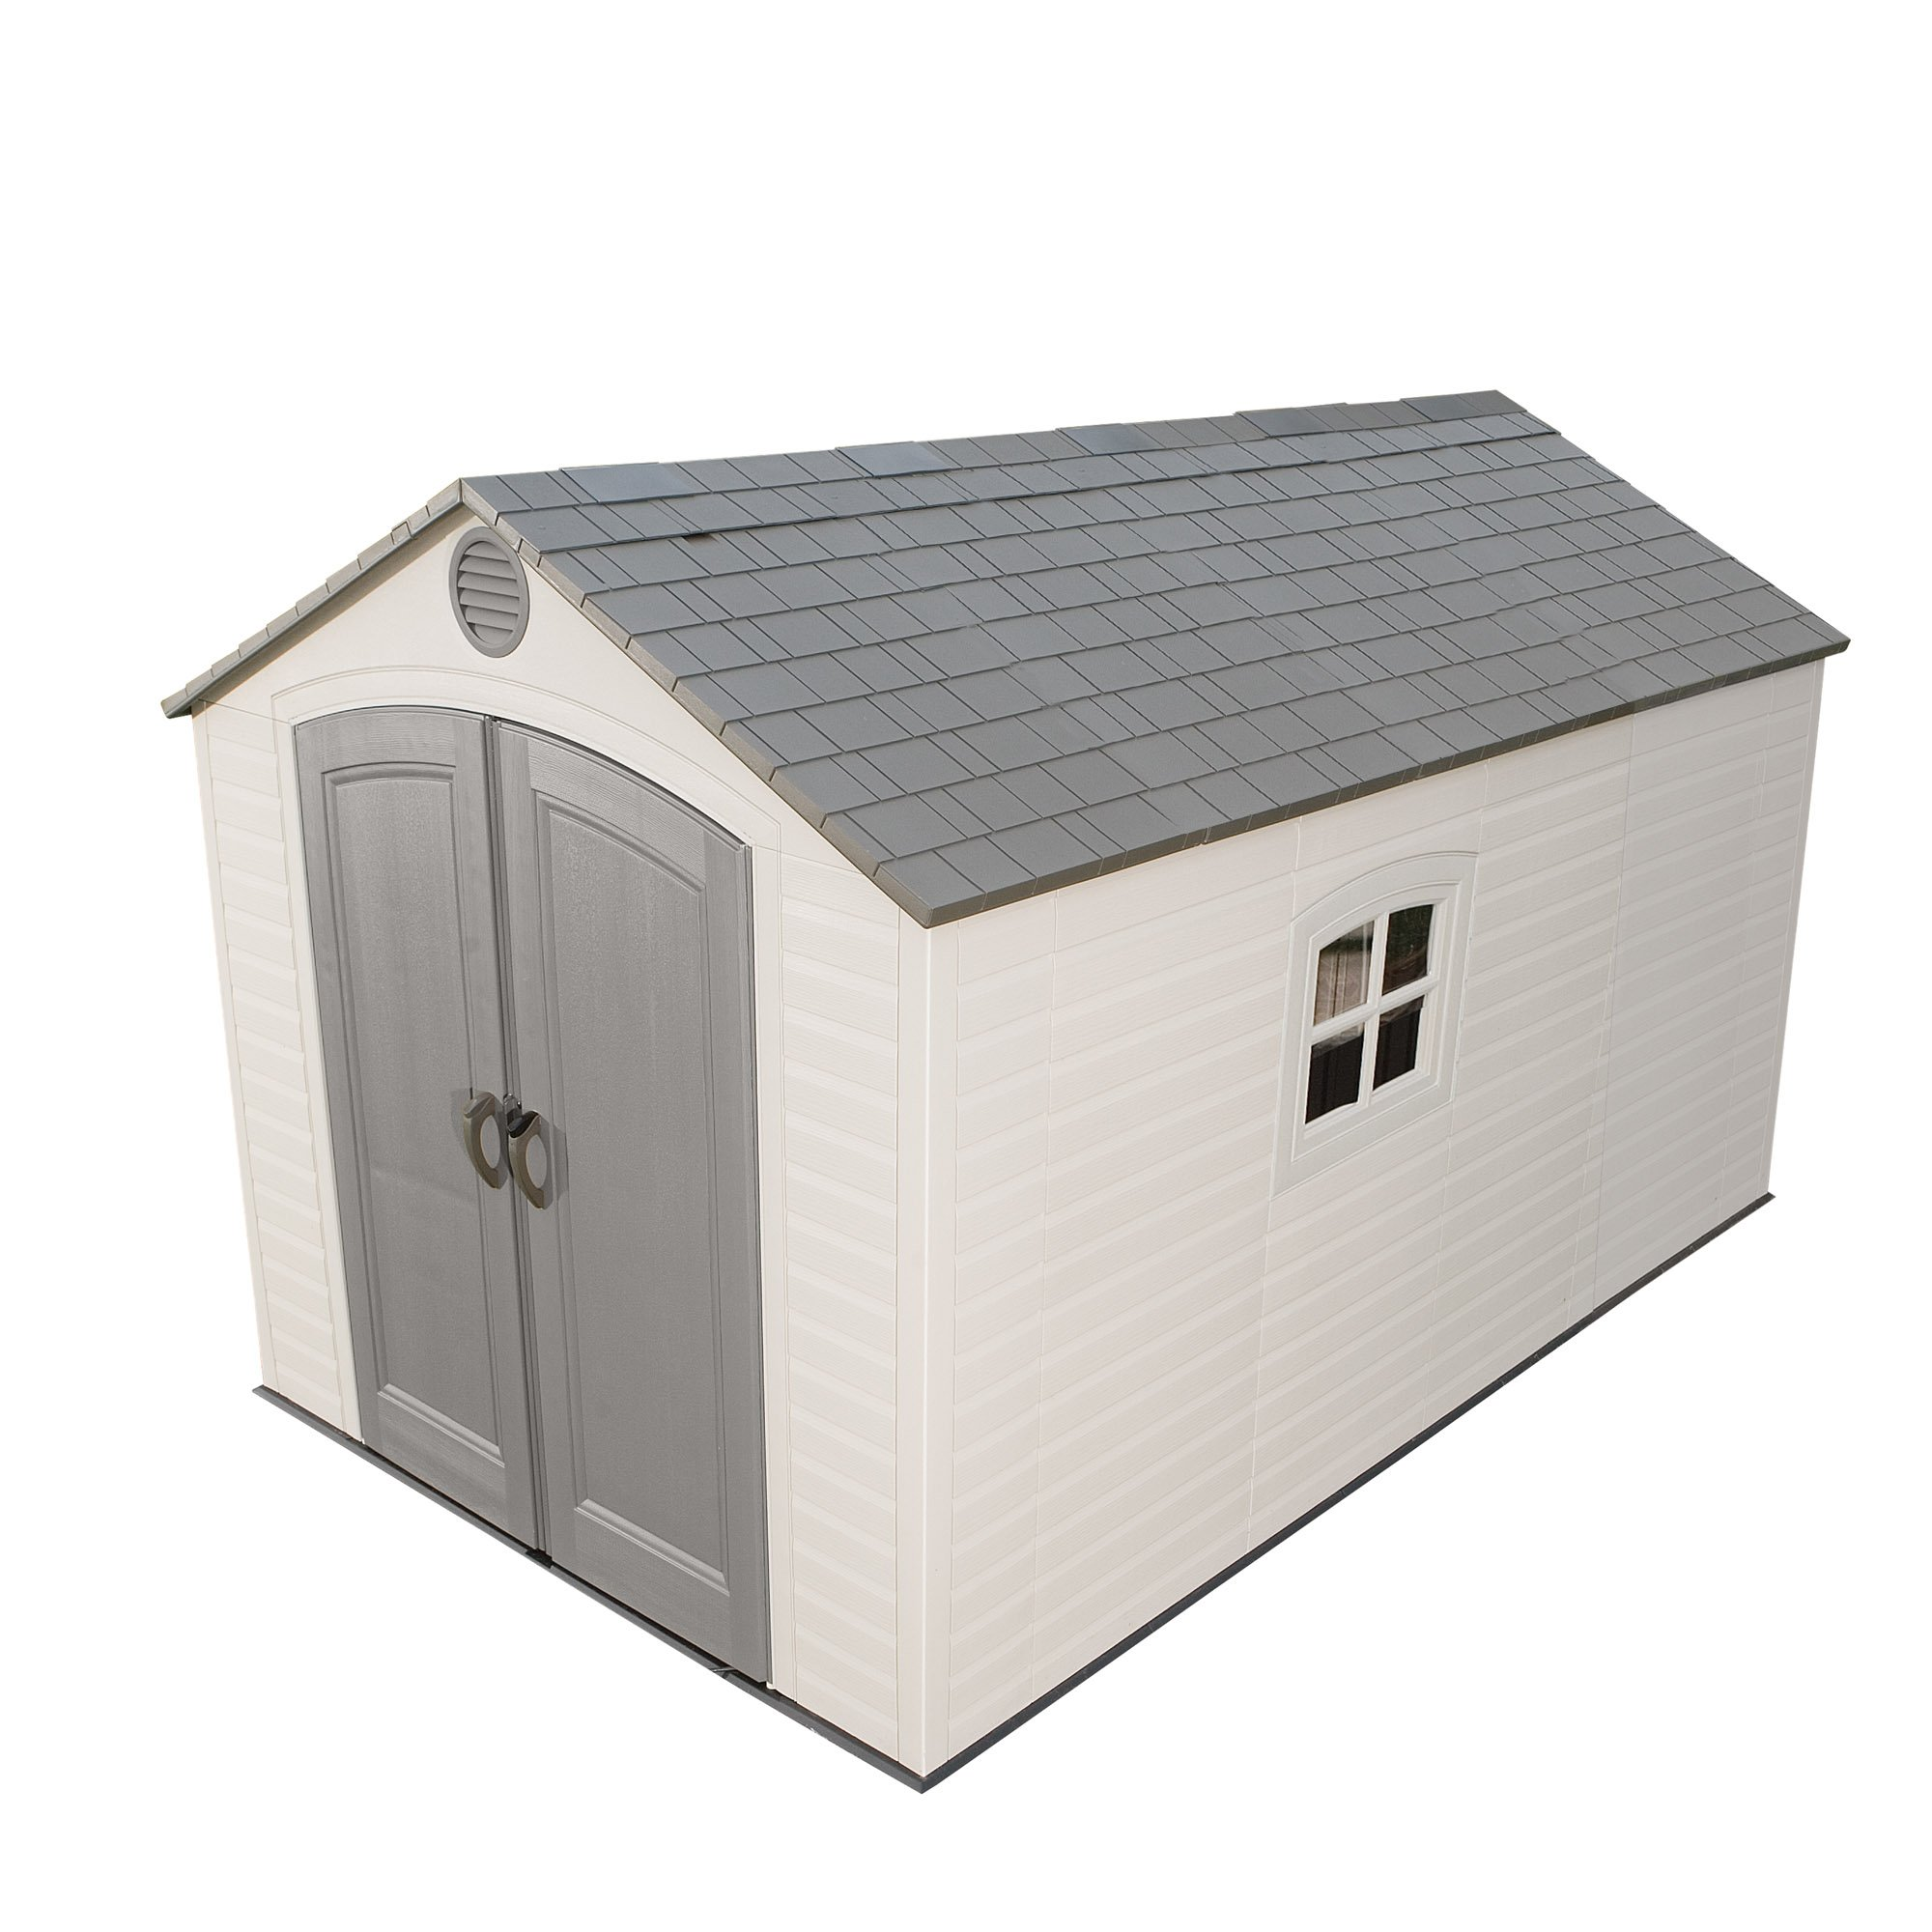 rubbermaid for storage brilliant best large sheds largeal storageededs leonie shed horizontal vertical